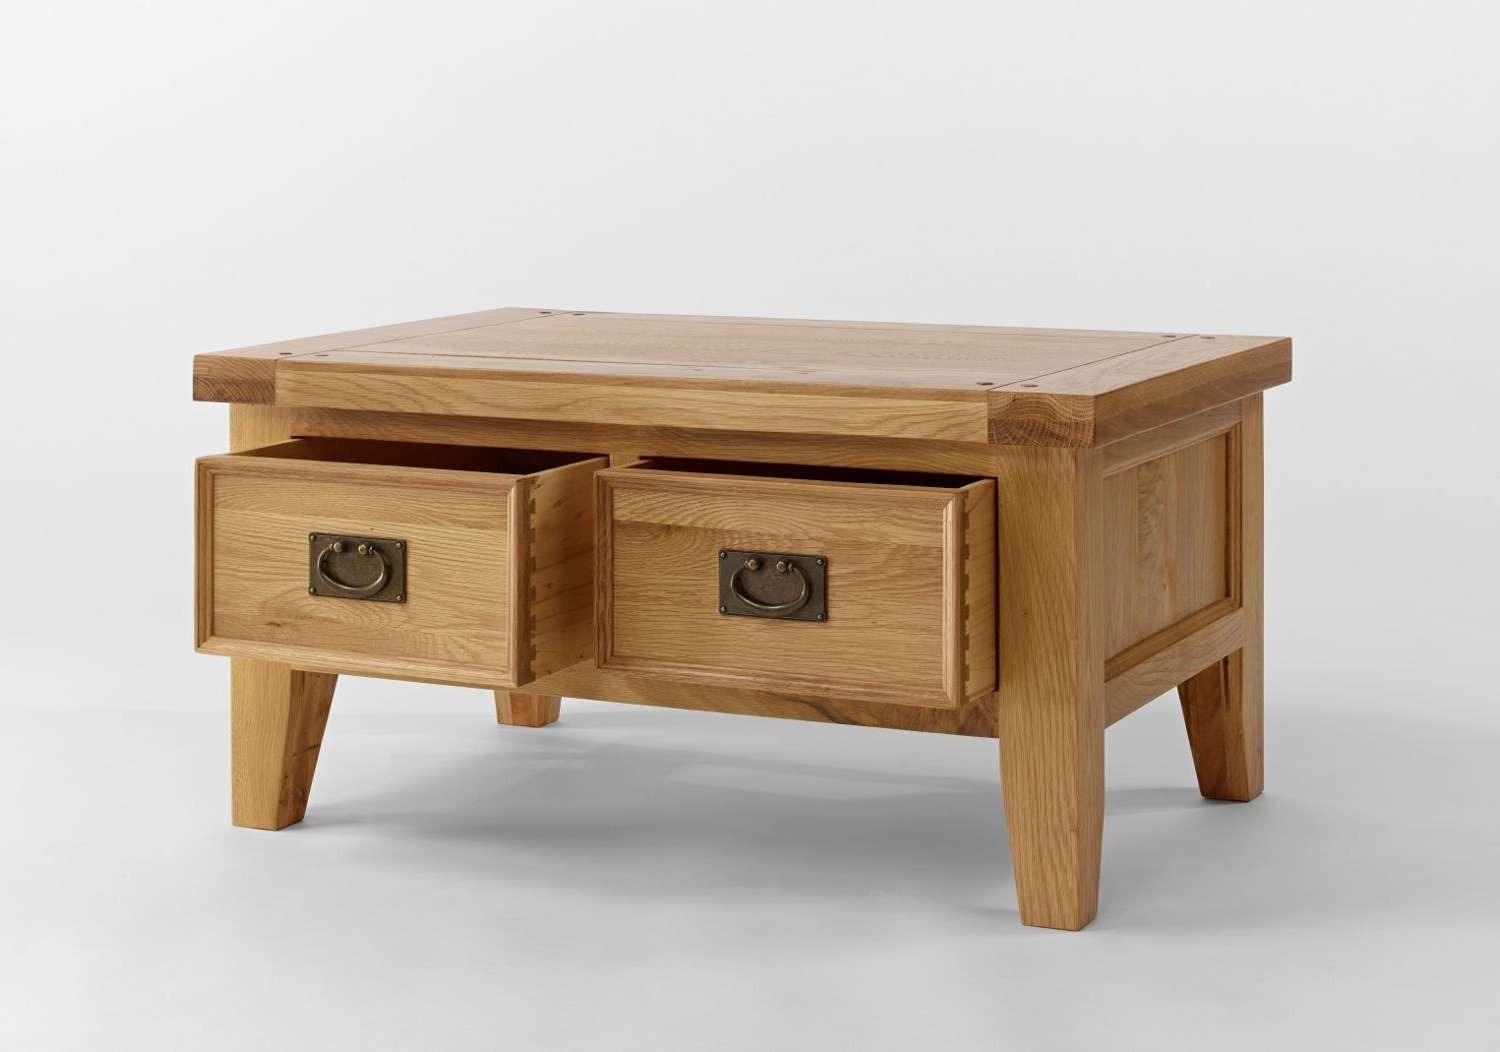 Small Wooden Coffee Table 20 Best Small Coffee Tables With Storage